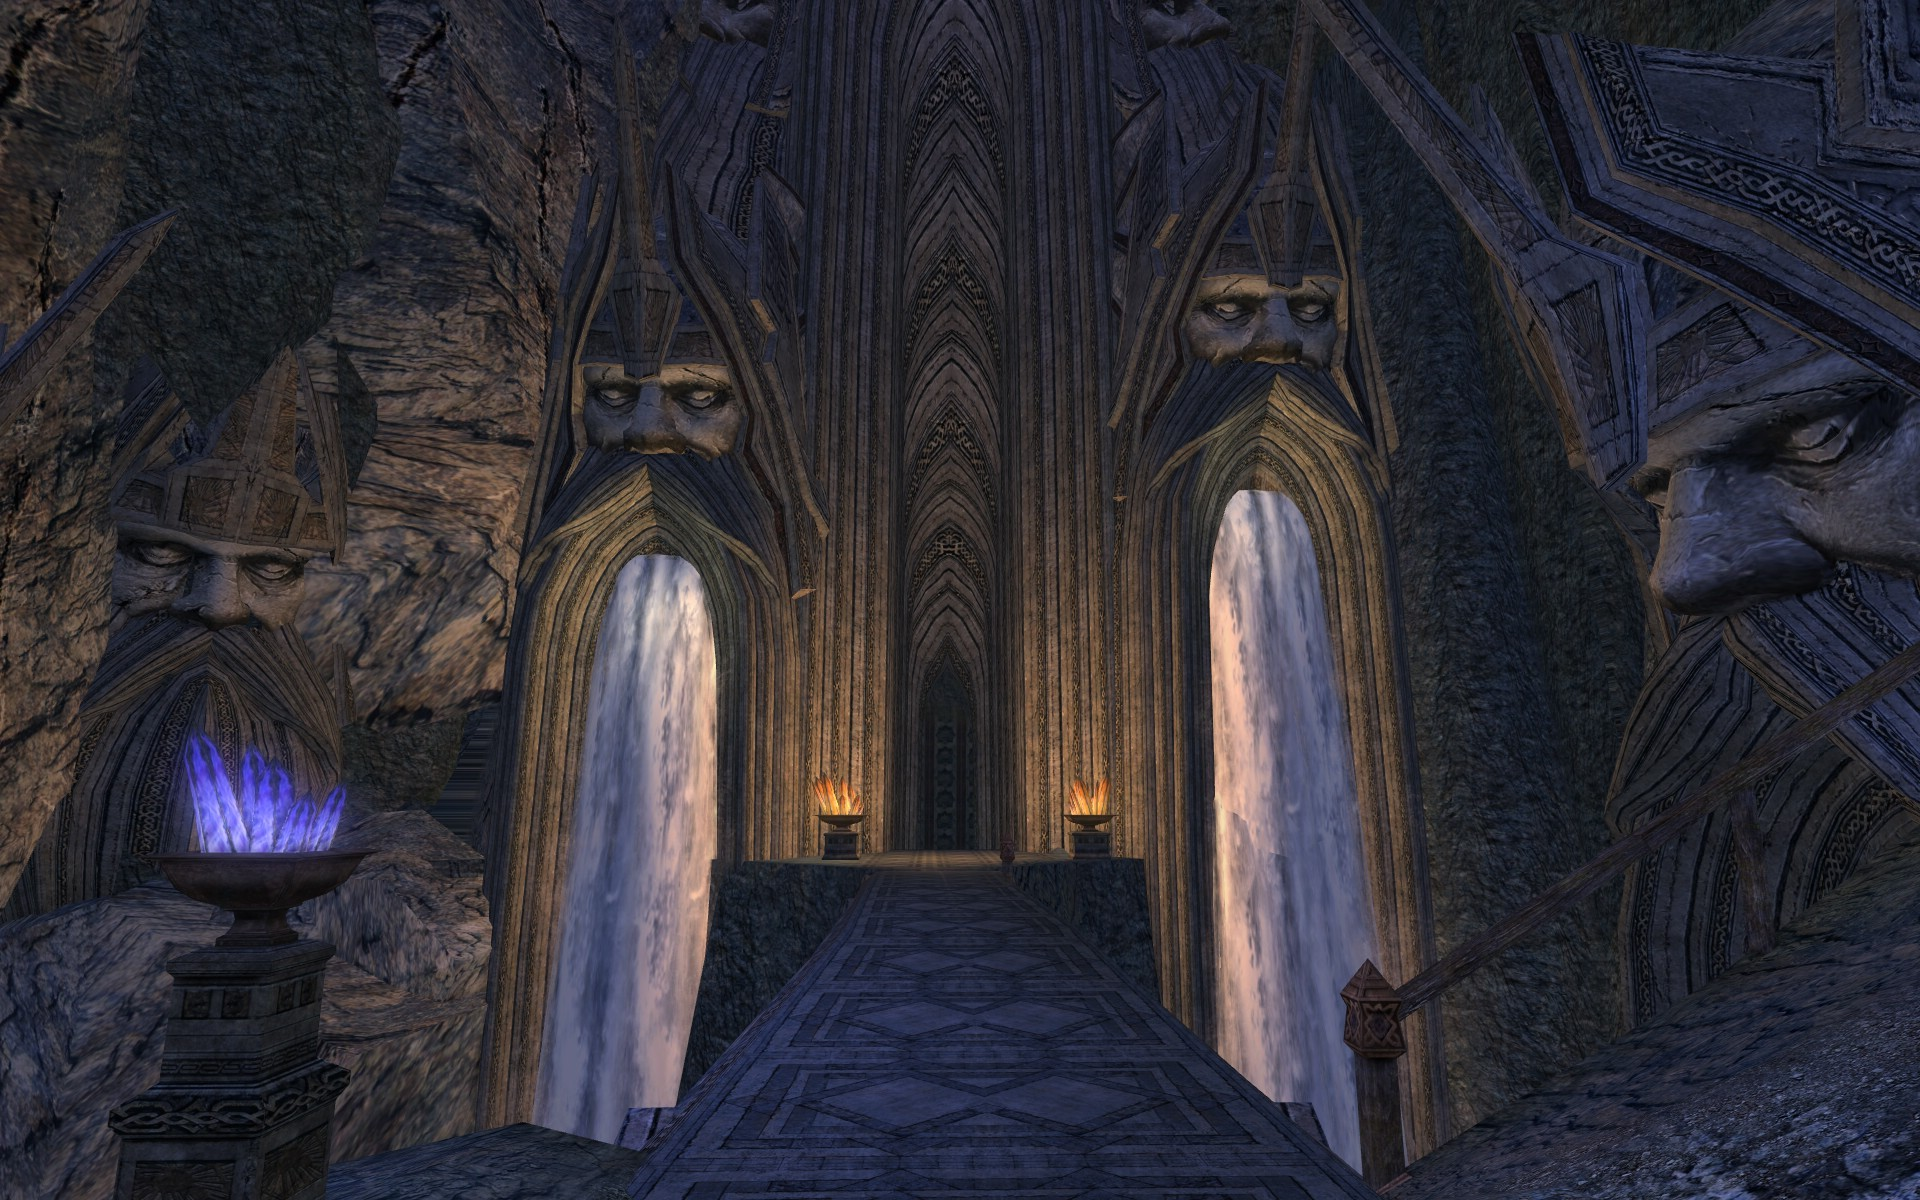 Lord of the Rings Online - The Stone Council - Mines of Moria